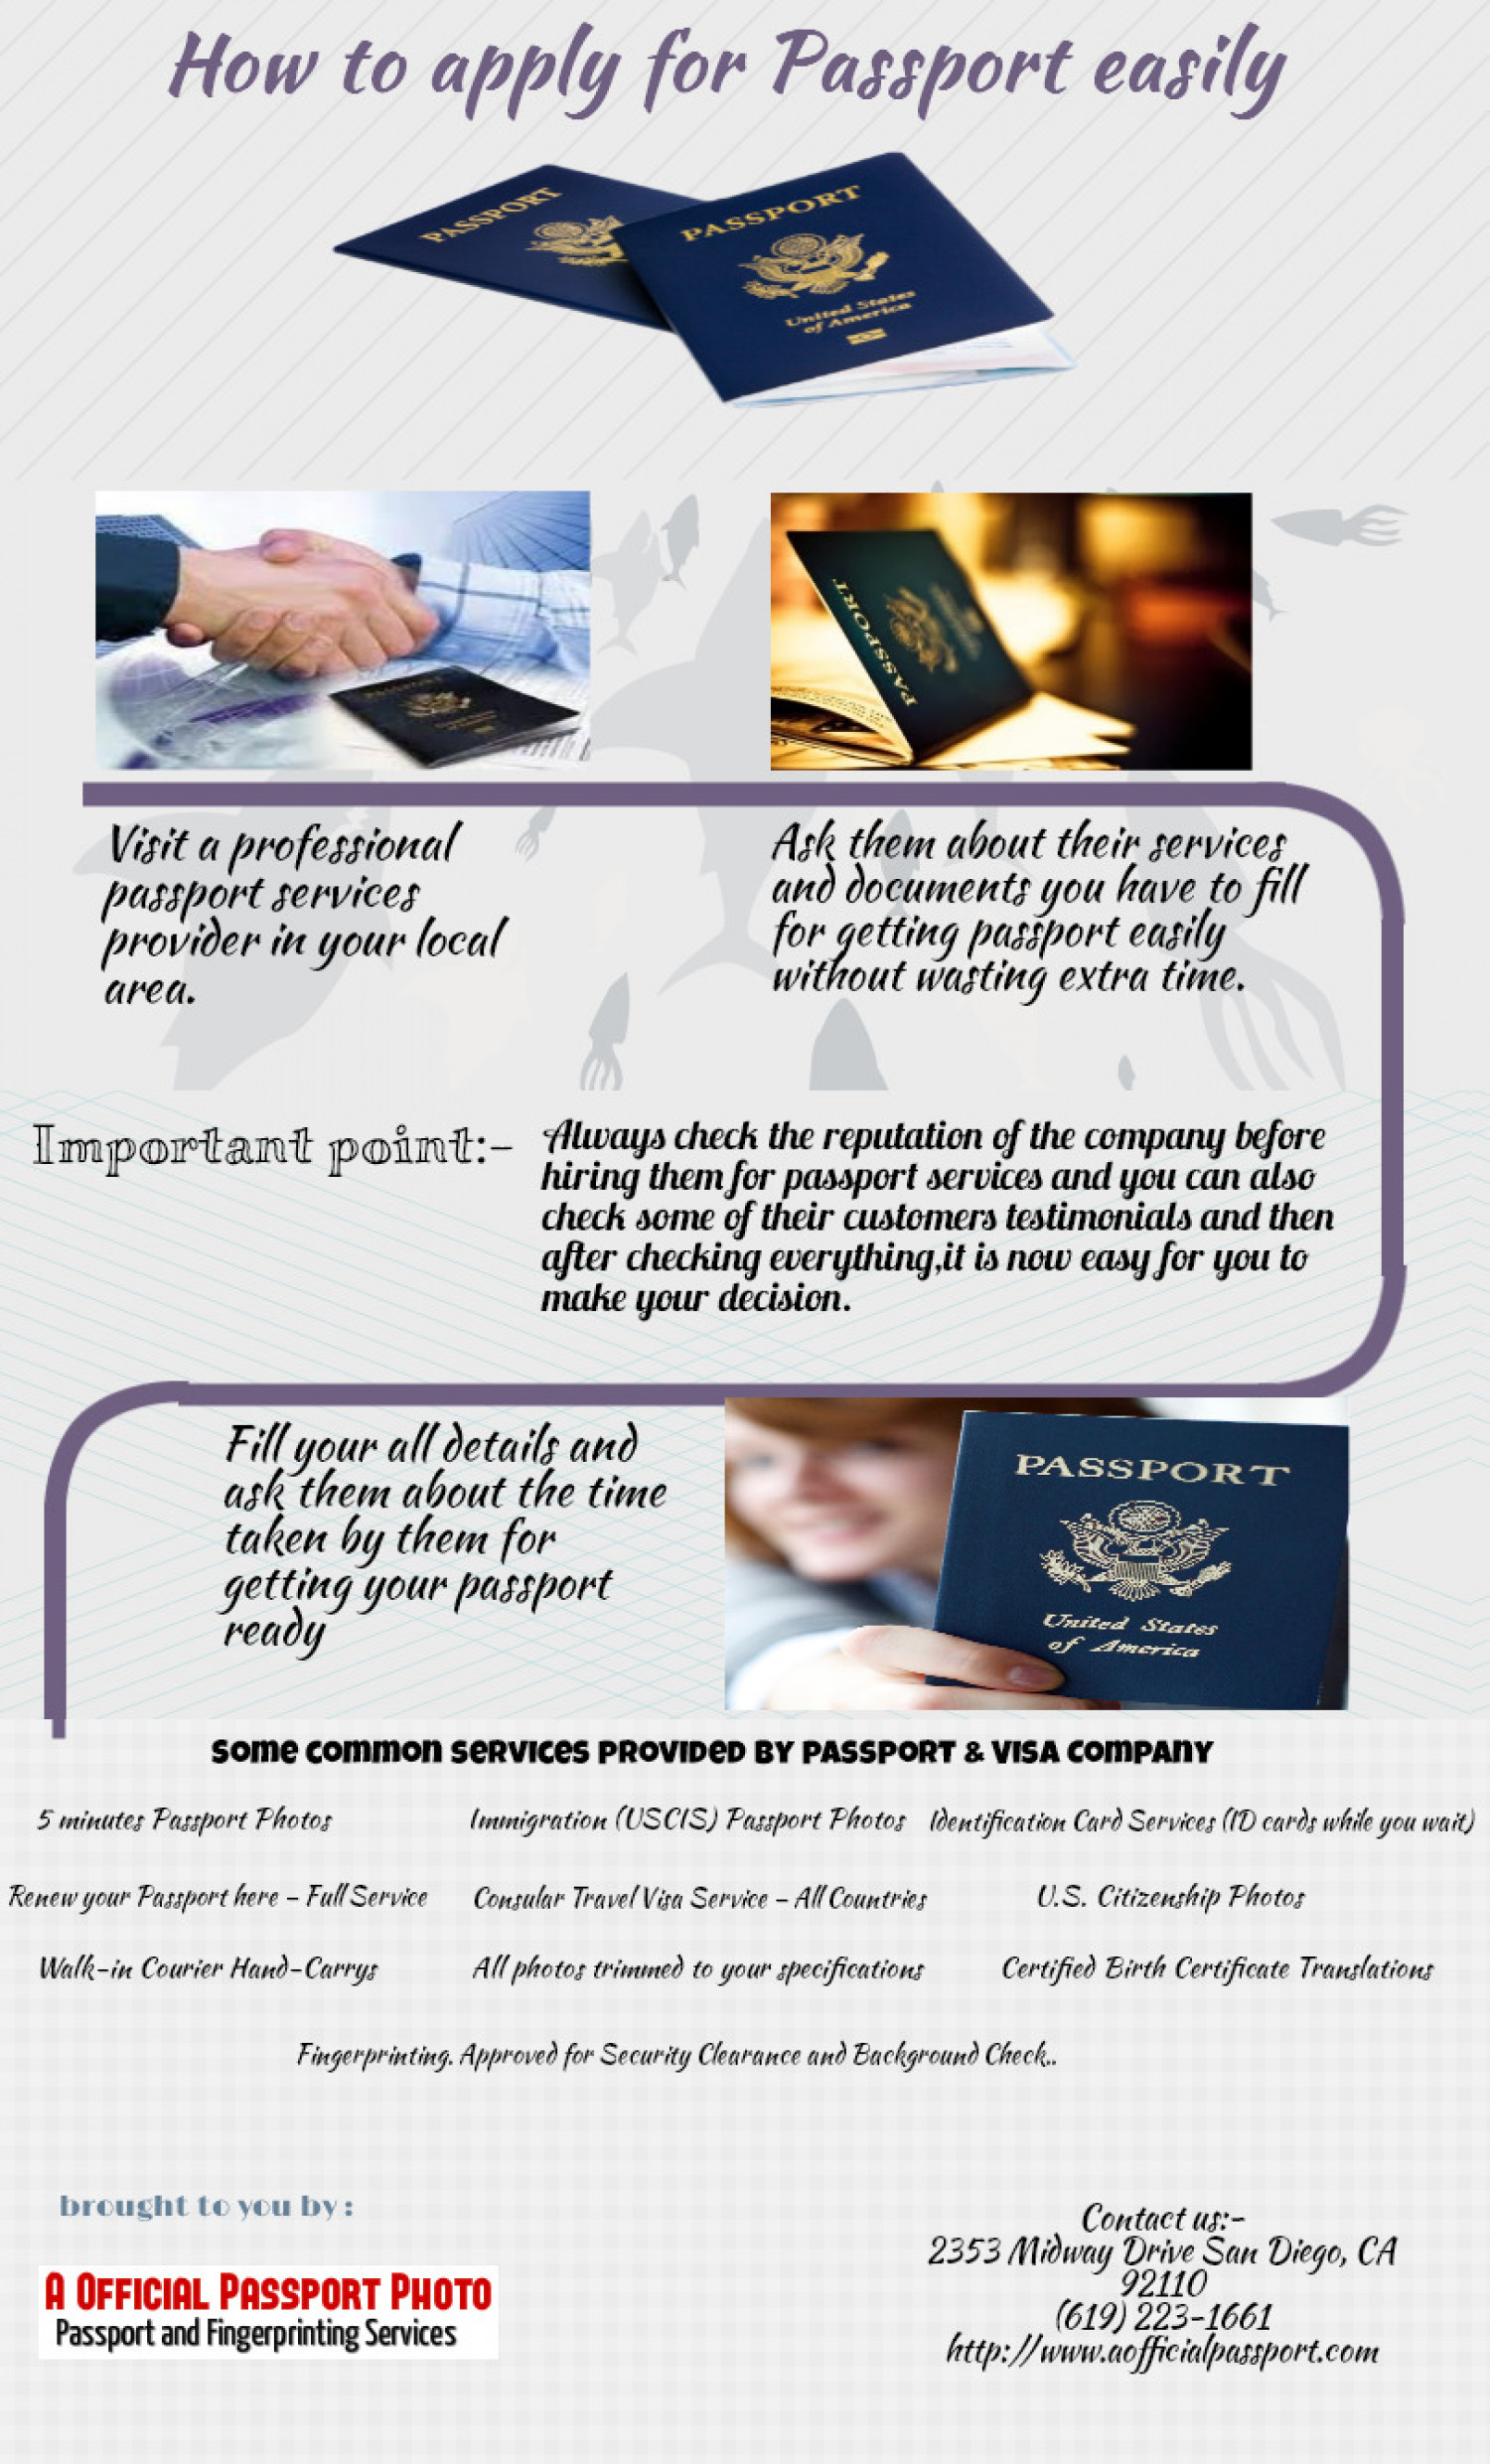 How To Apply For Passport Easily Visual San Diego Vacation Activities